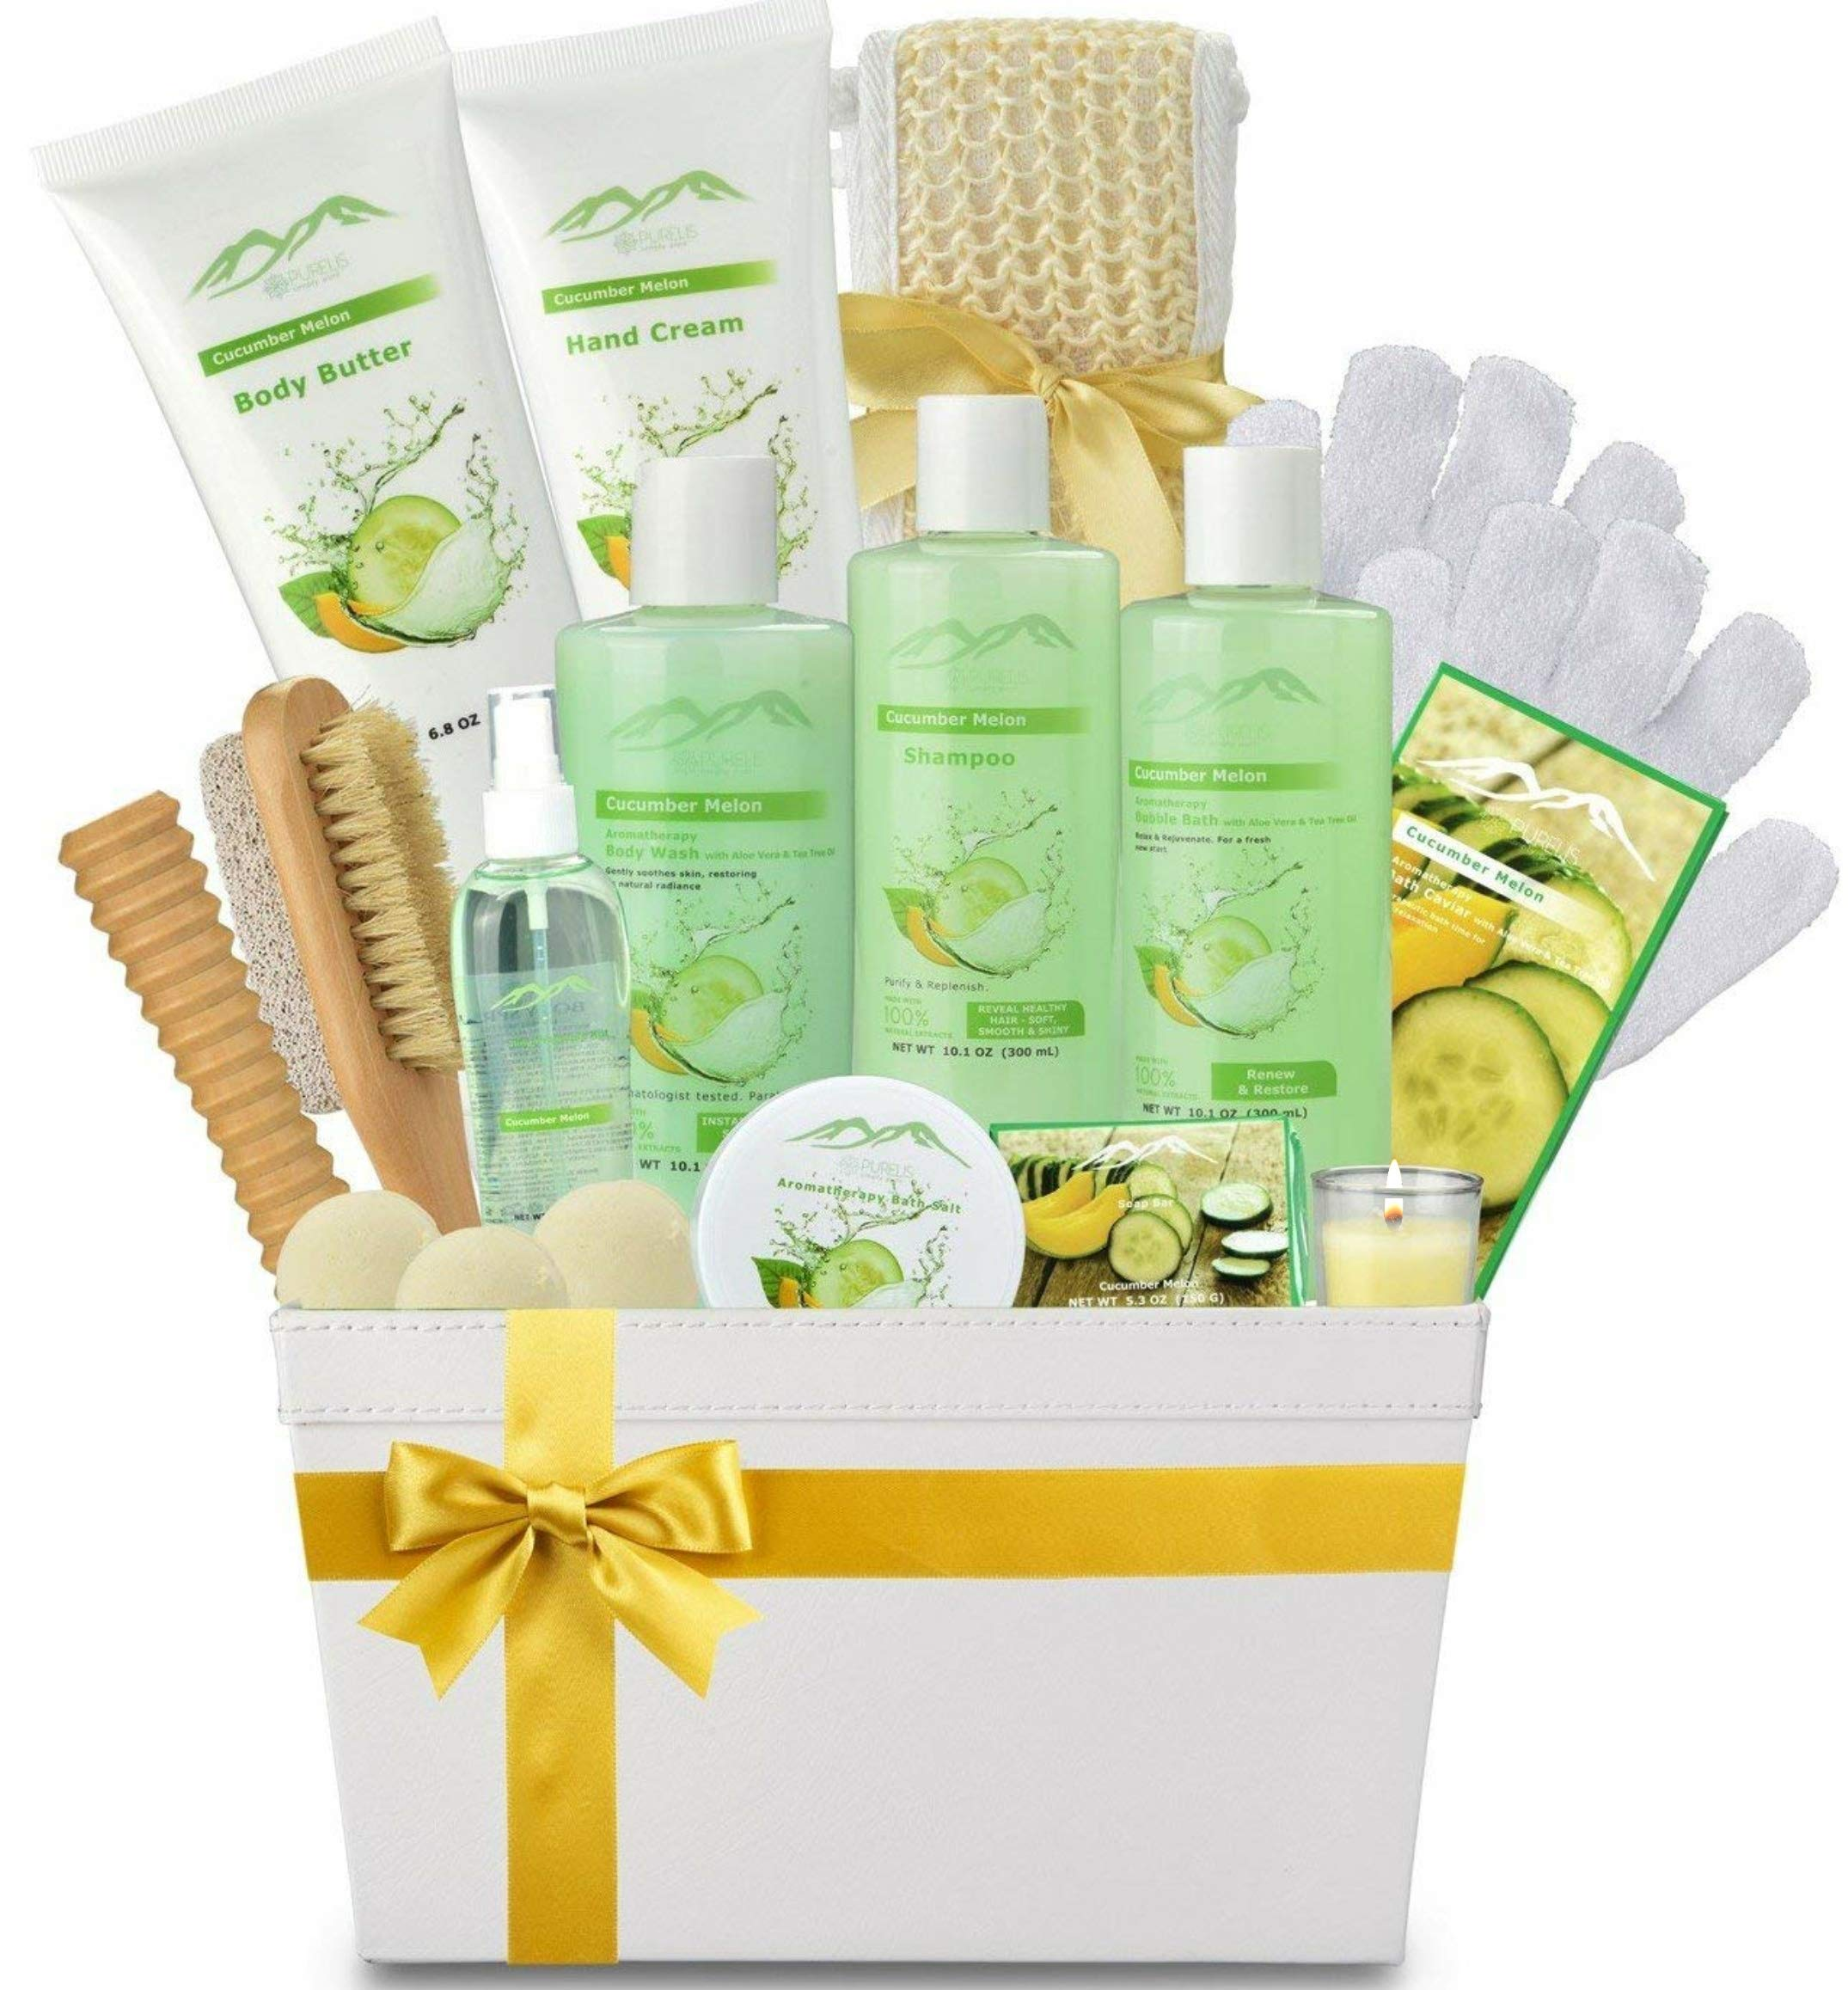 Spa Gift Baskets Beauty Gift Basket - Spa Basket, Spa Kit Bed and Bath Body Works Gift Baskets for Women! Bath Gift Set Bubble Bath Basket Body Lotion Gift Set for Holidays (Cucumber Melon) by Purelis